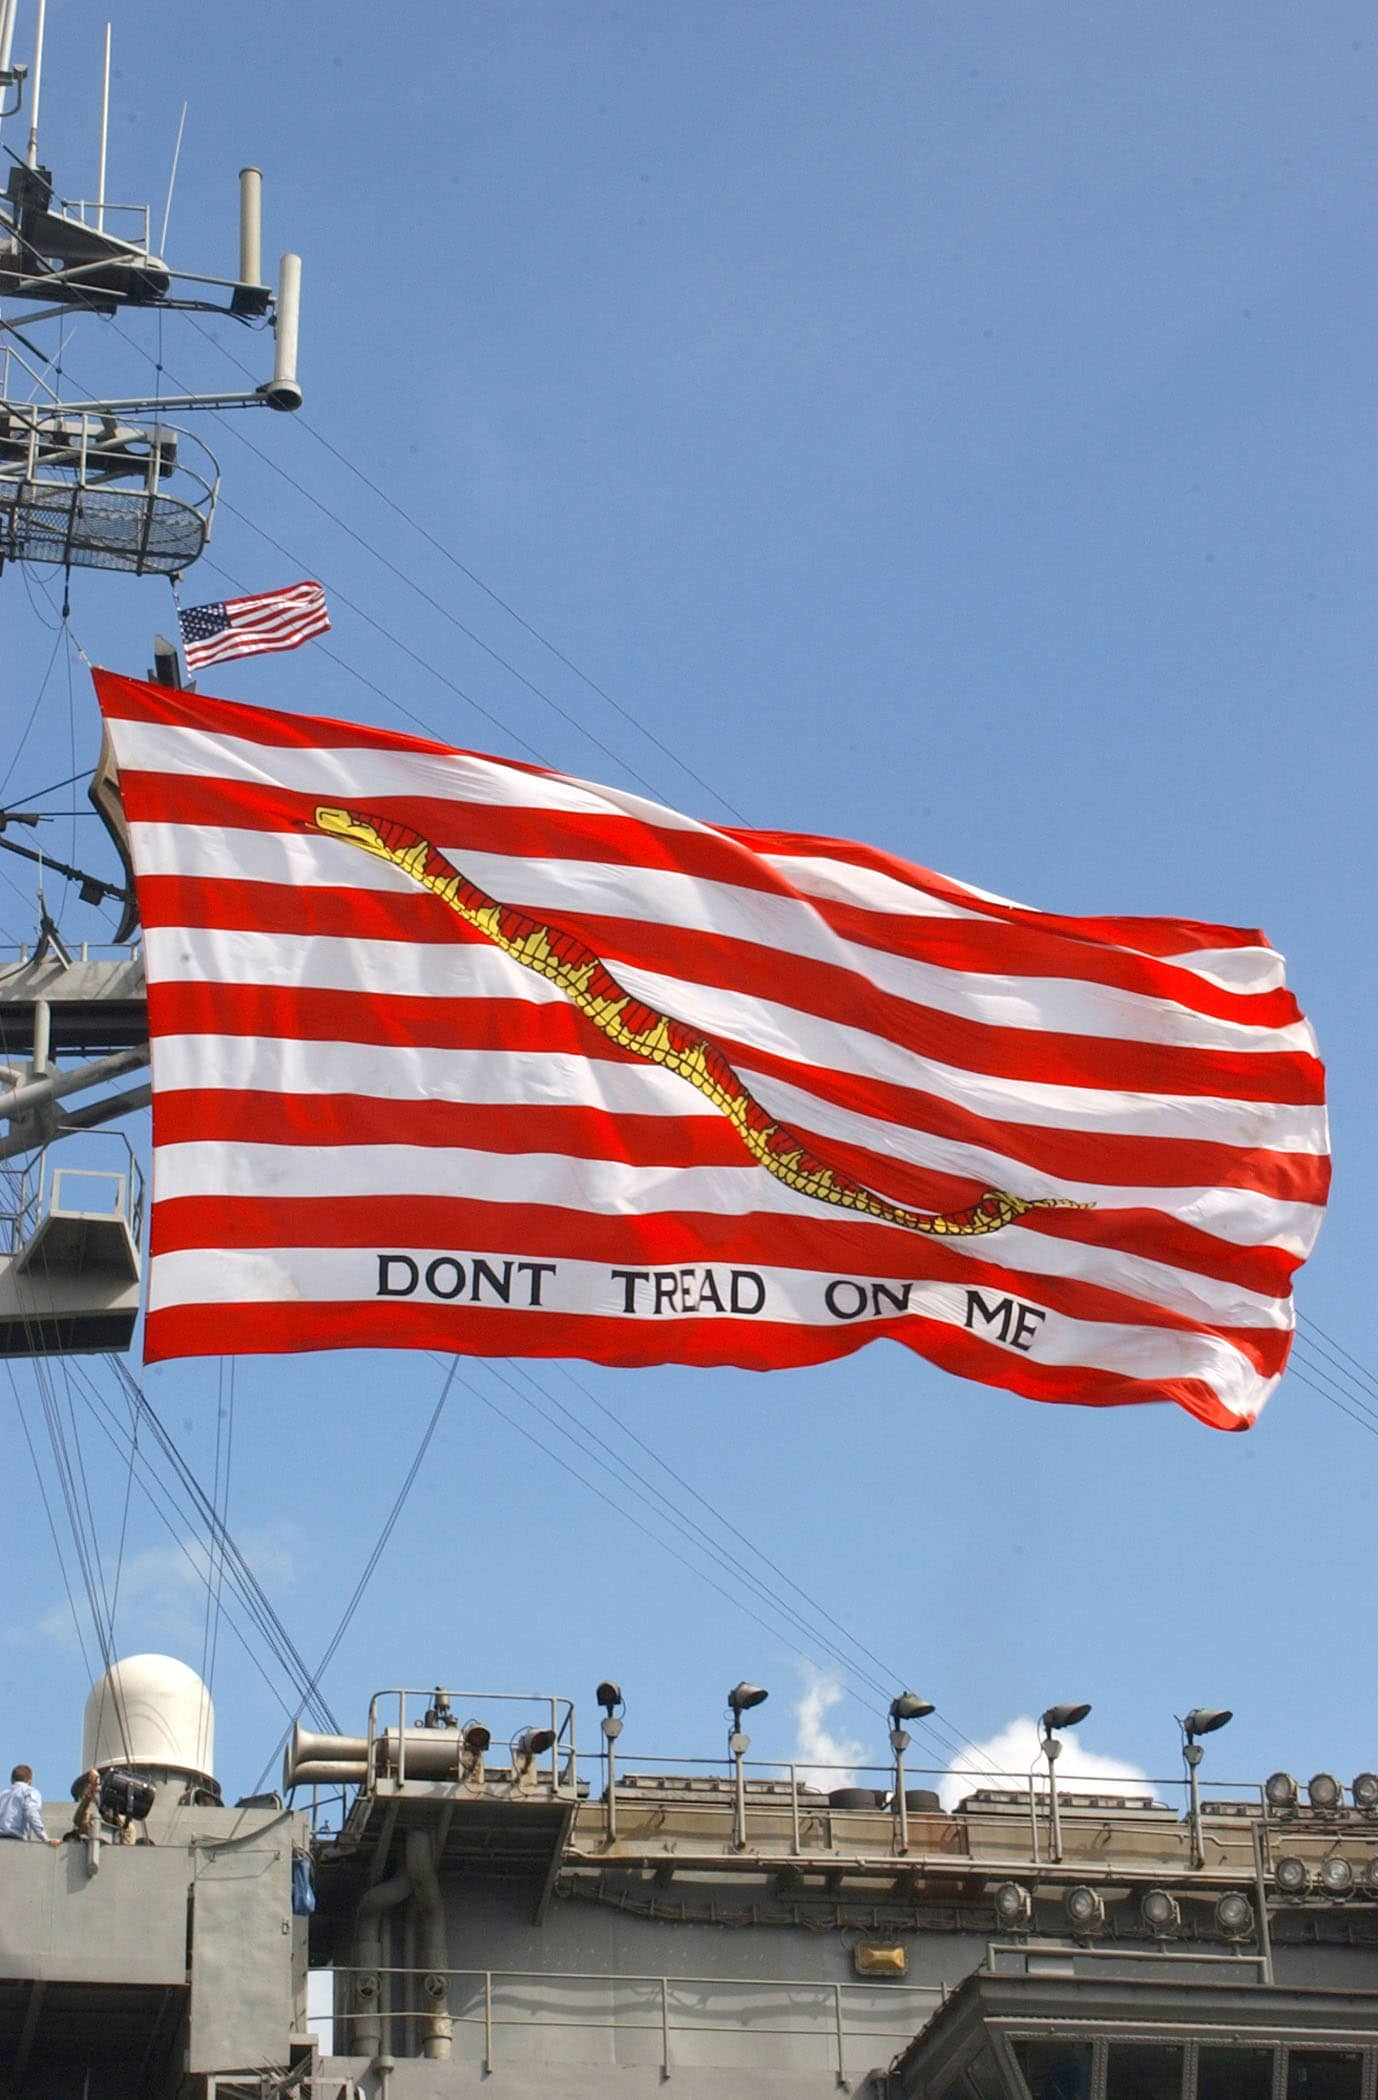 At sea aboard USS Kitty Hawk (CV 63) Feb. 15, 2003 -- The Navy's largest First Navy Jack, with the motto Don't Tread On Me, flies high above USS Kitty Hawk during her transit through the Straits of Malacca.